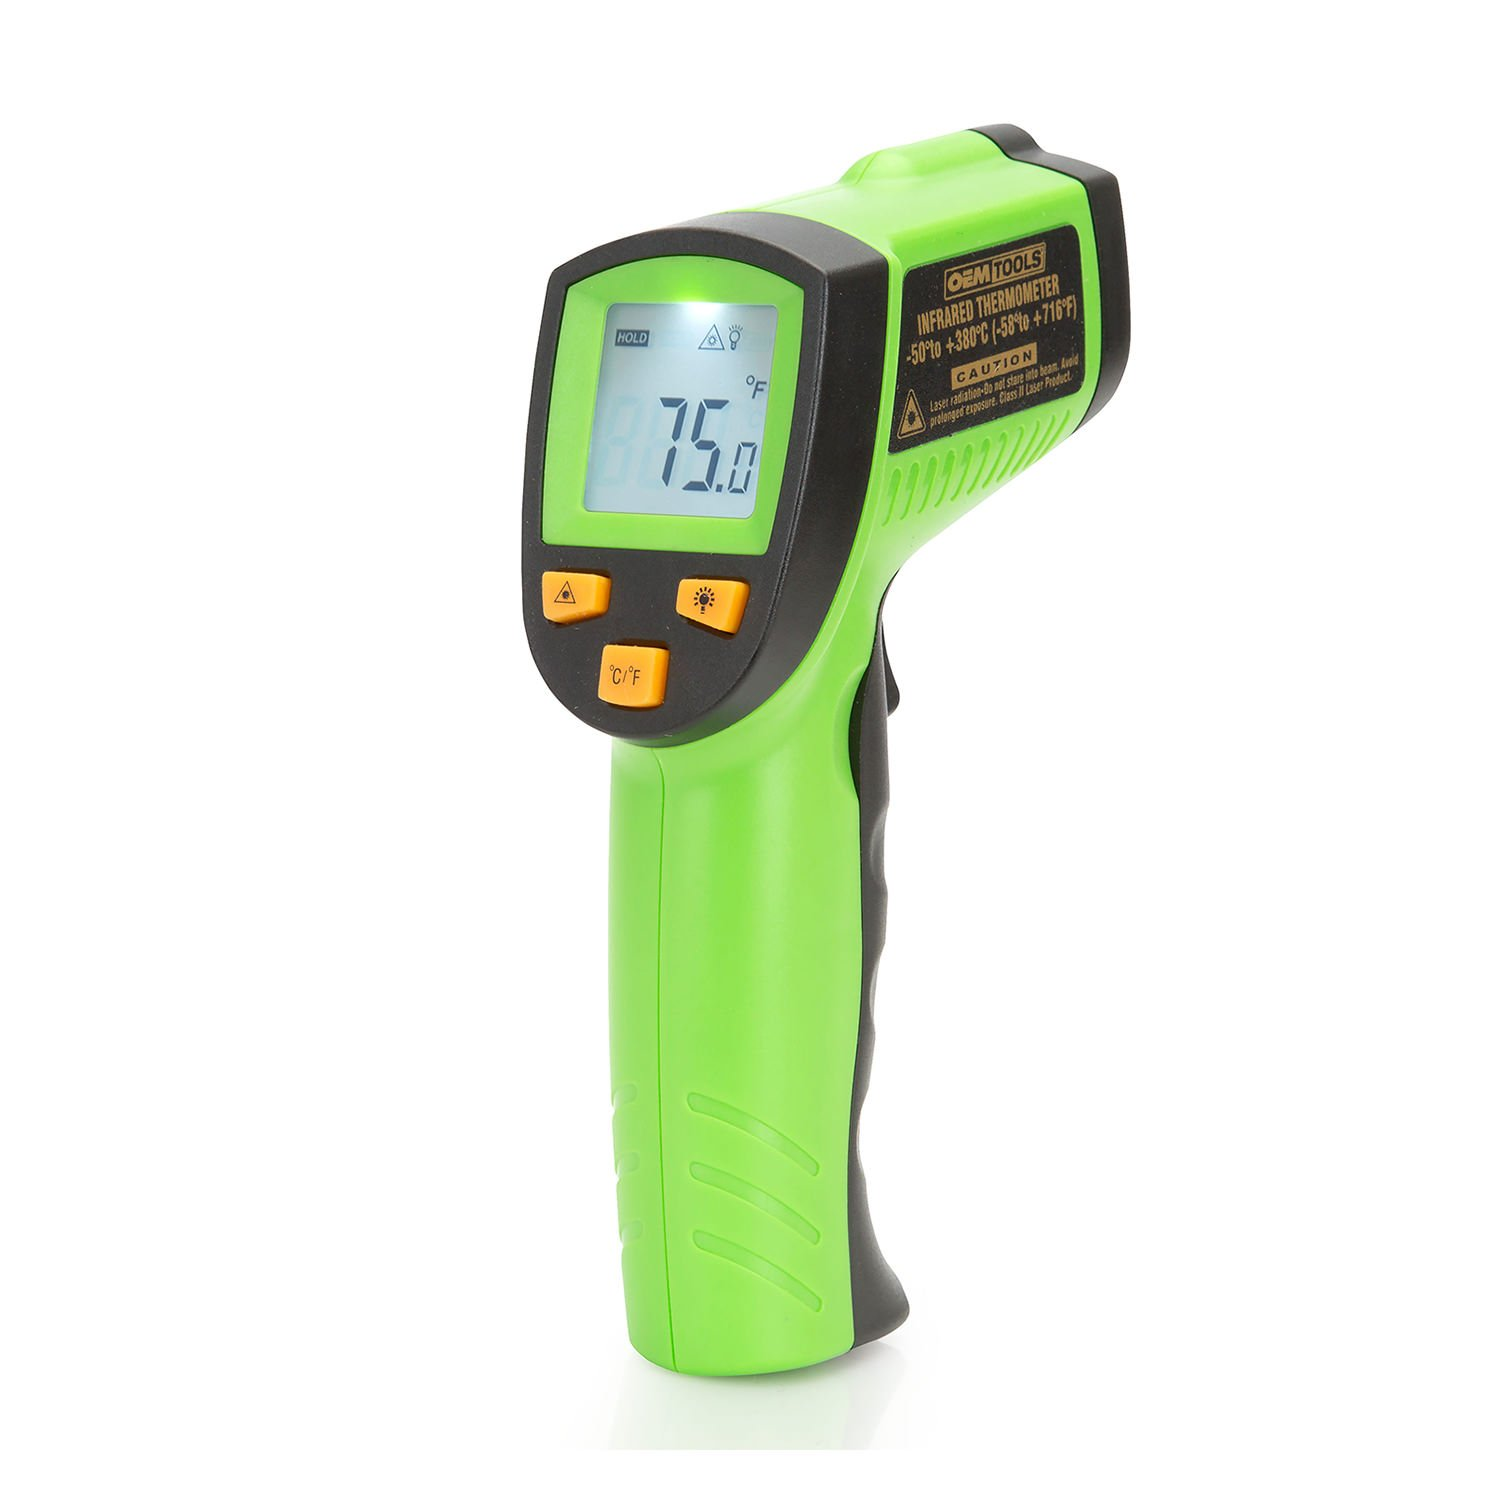 OEMTOOLS 25245 Infrared Thermometer GREAT NECK